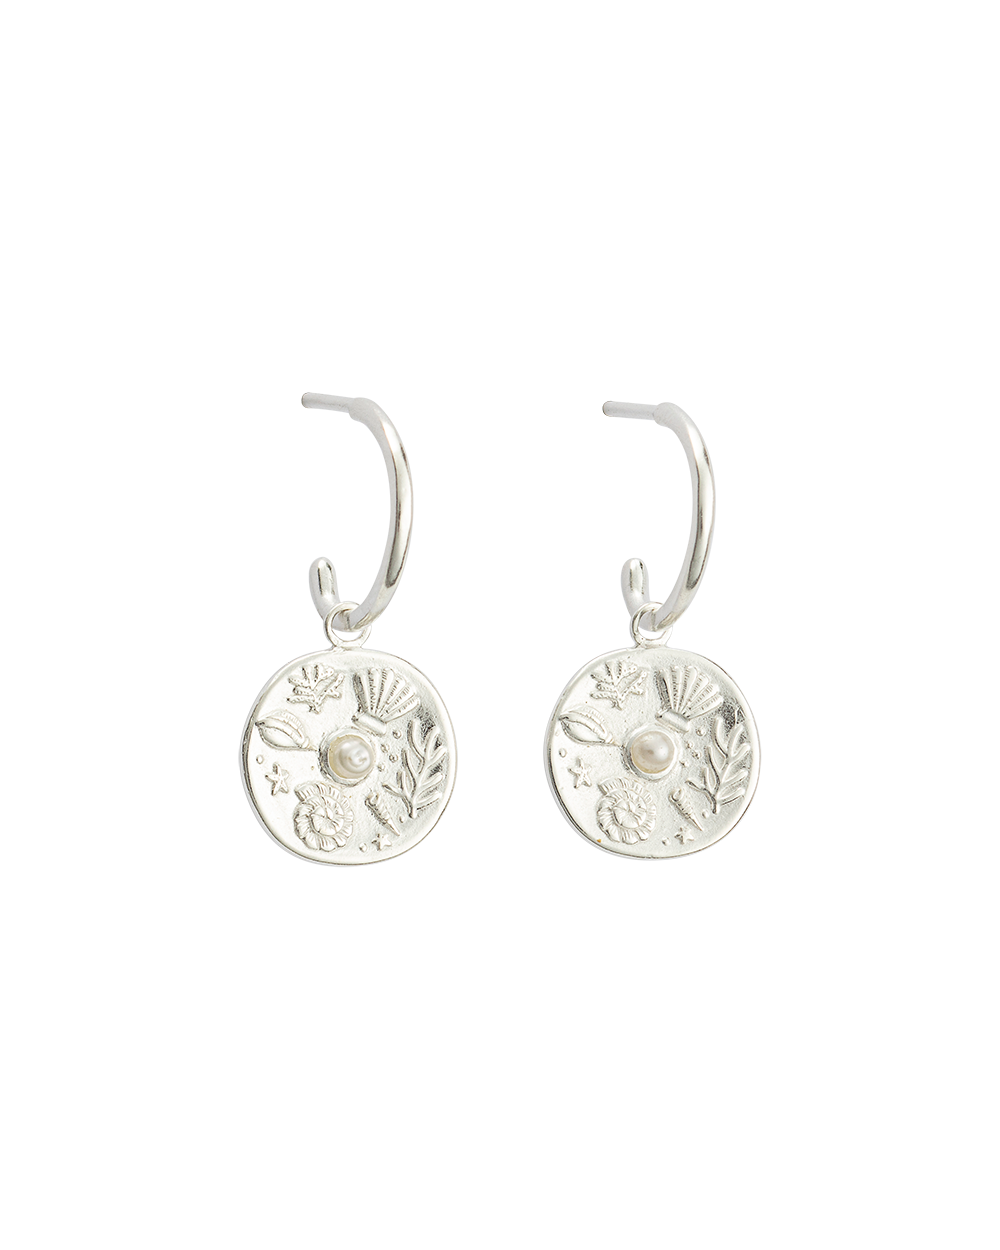 BY THE SEA HOOPS (STERLING SILVER)-FRONT